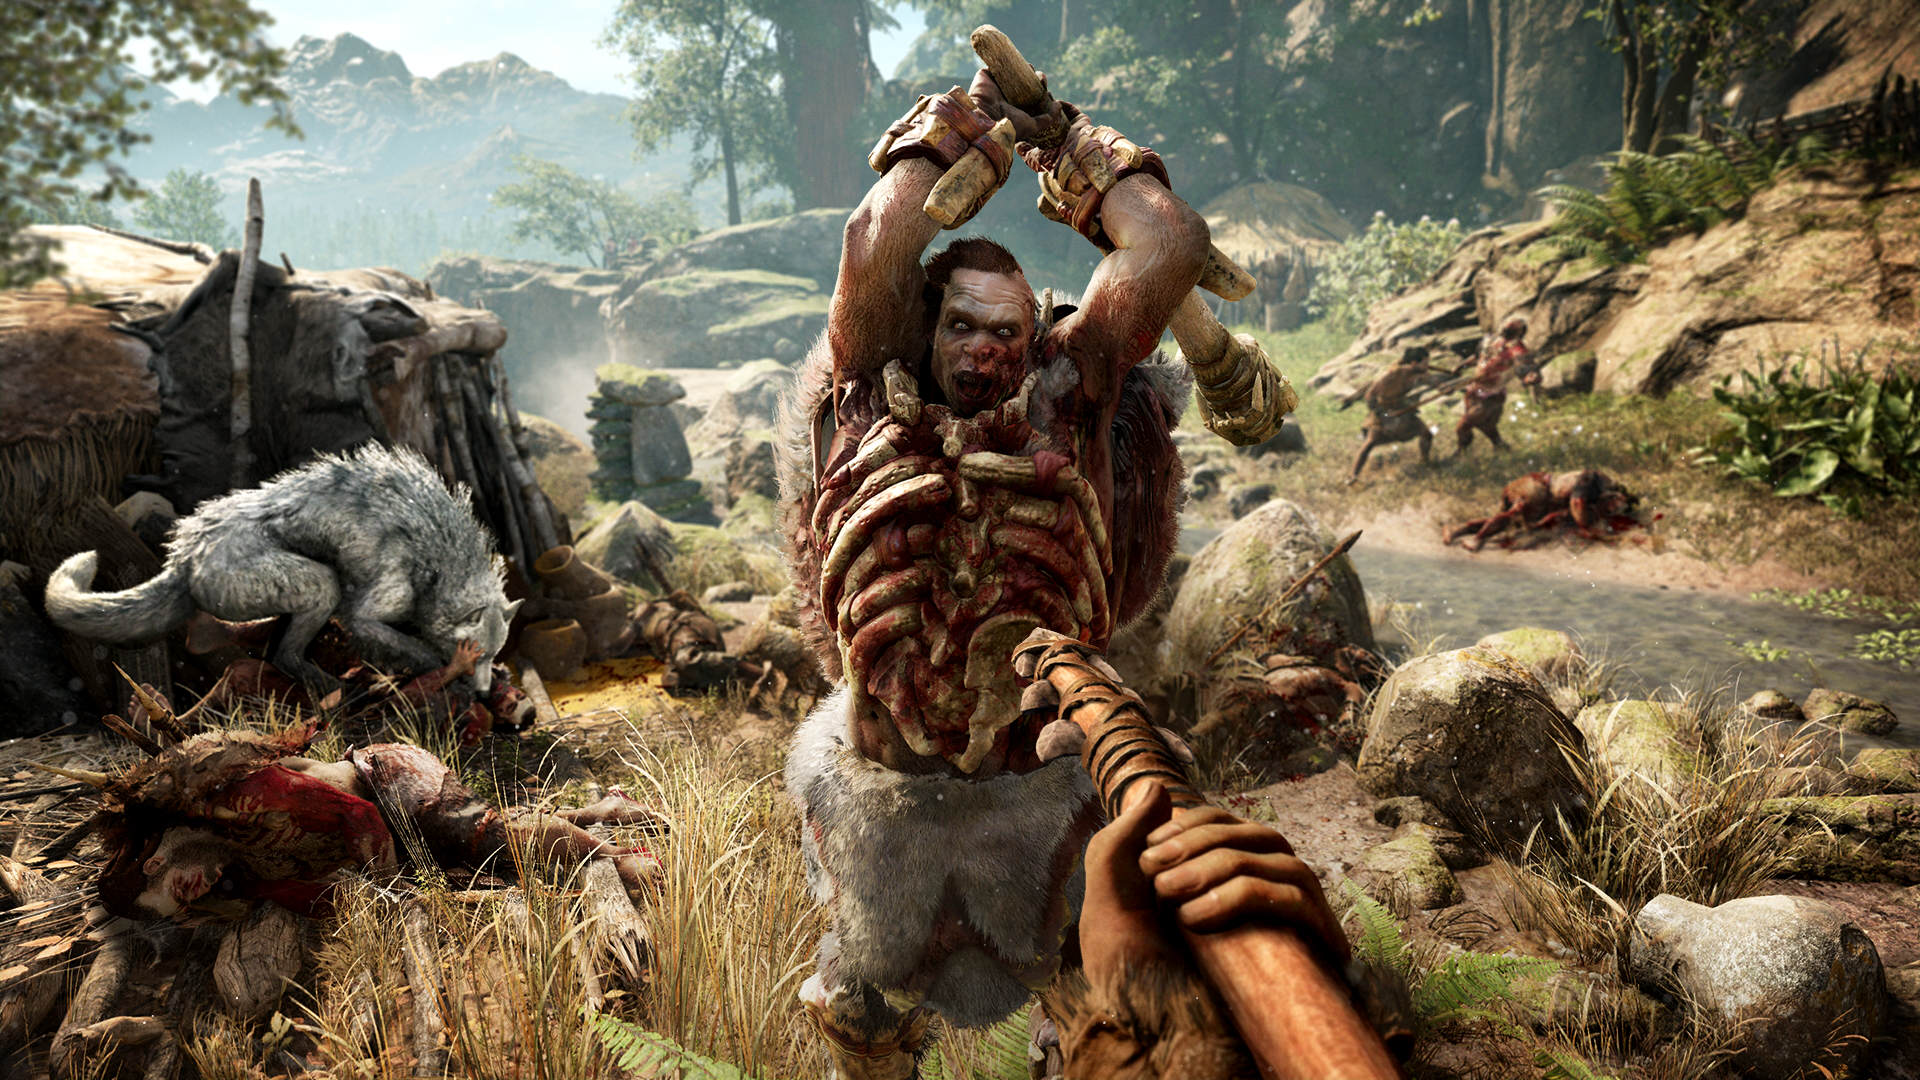 Far Cry Primal Introducing Intense New Challenge In April 3007167 fcp 09 udam attack screenshots preview pr 160126 6pm cet 1453716692